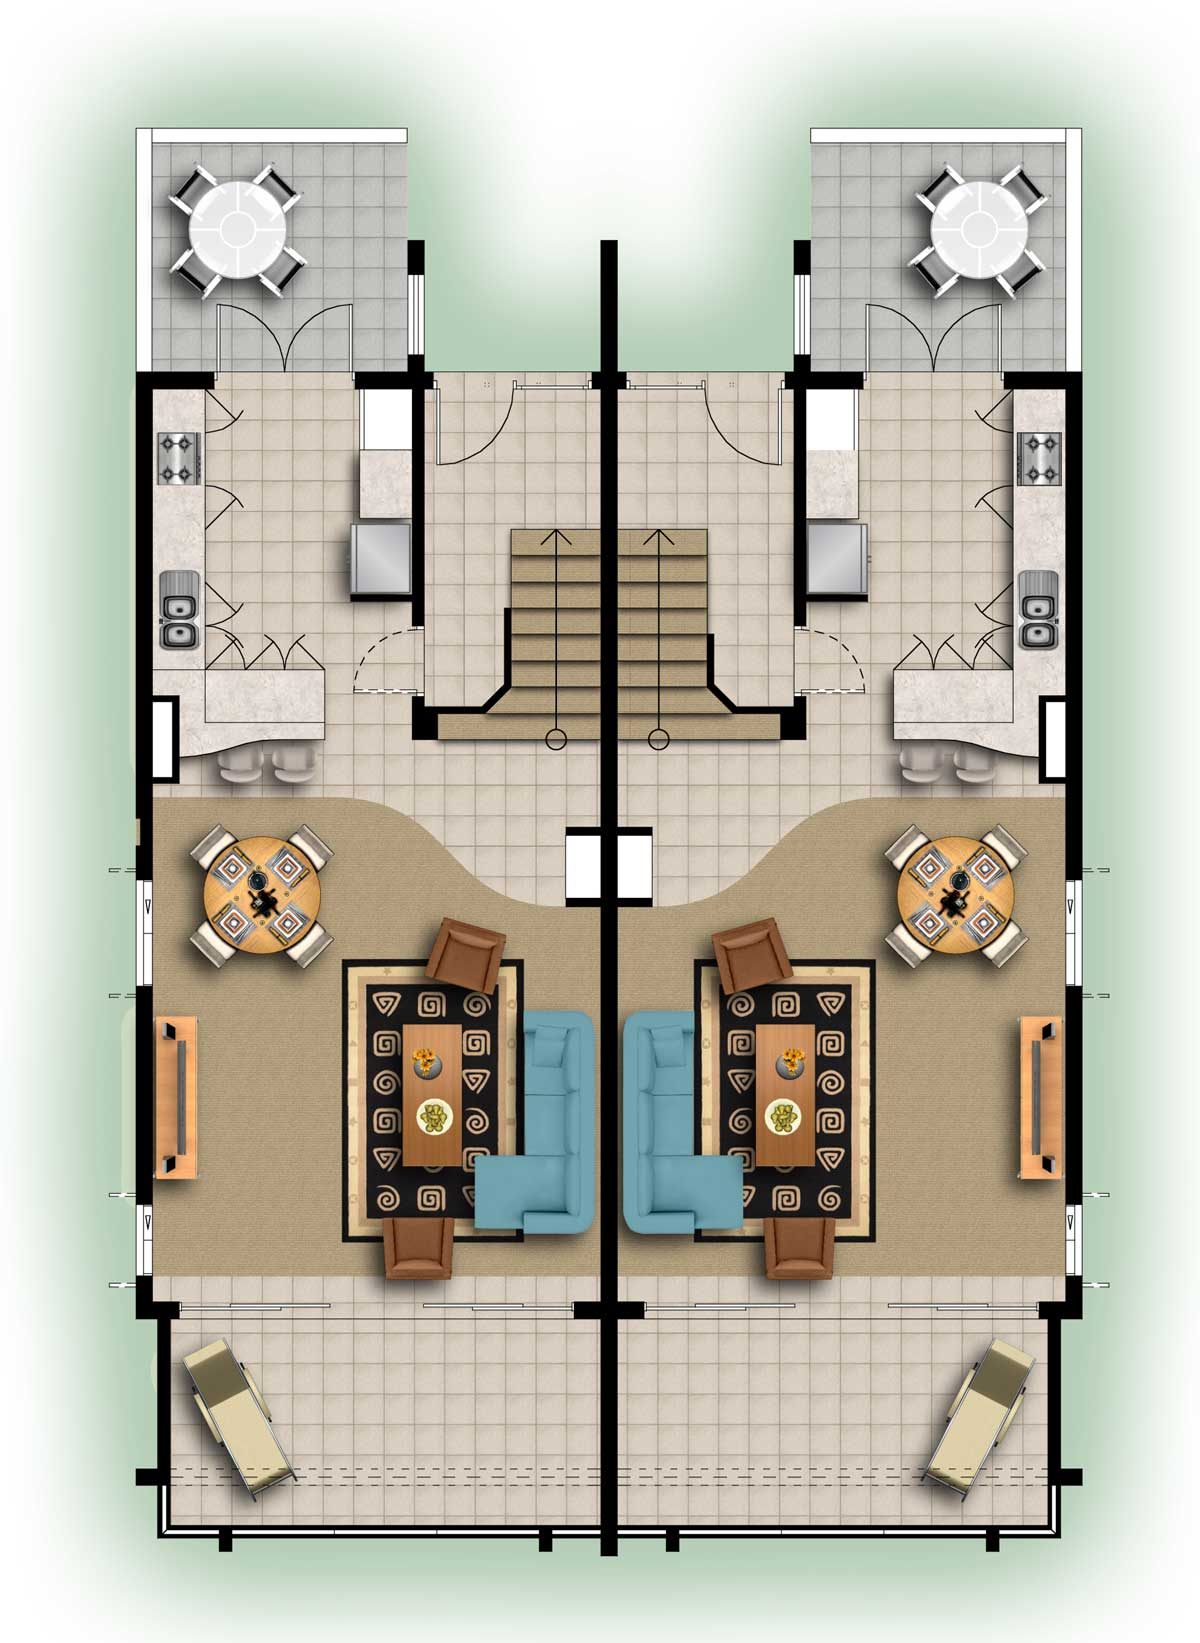 Floor plans designs for homes homesfeed for Floor plans for my home